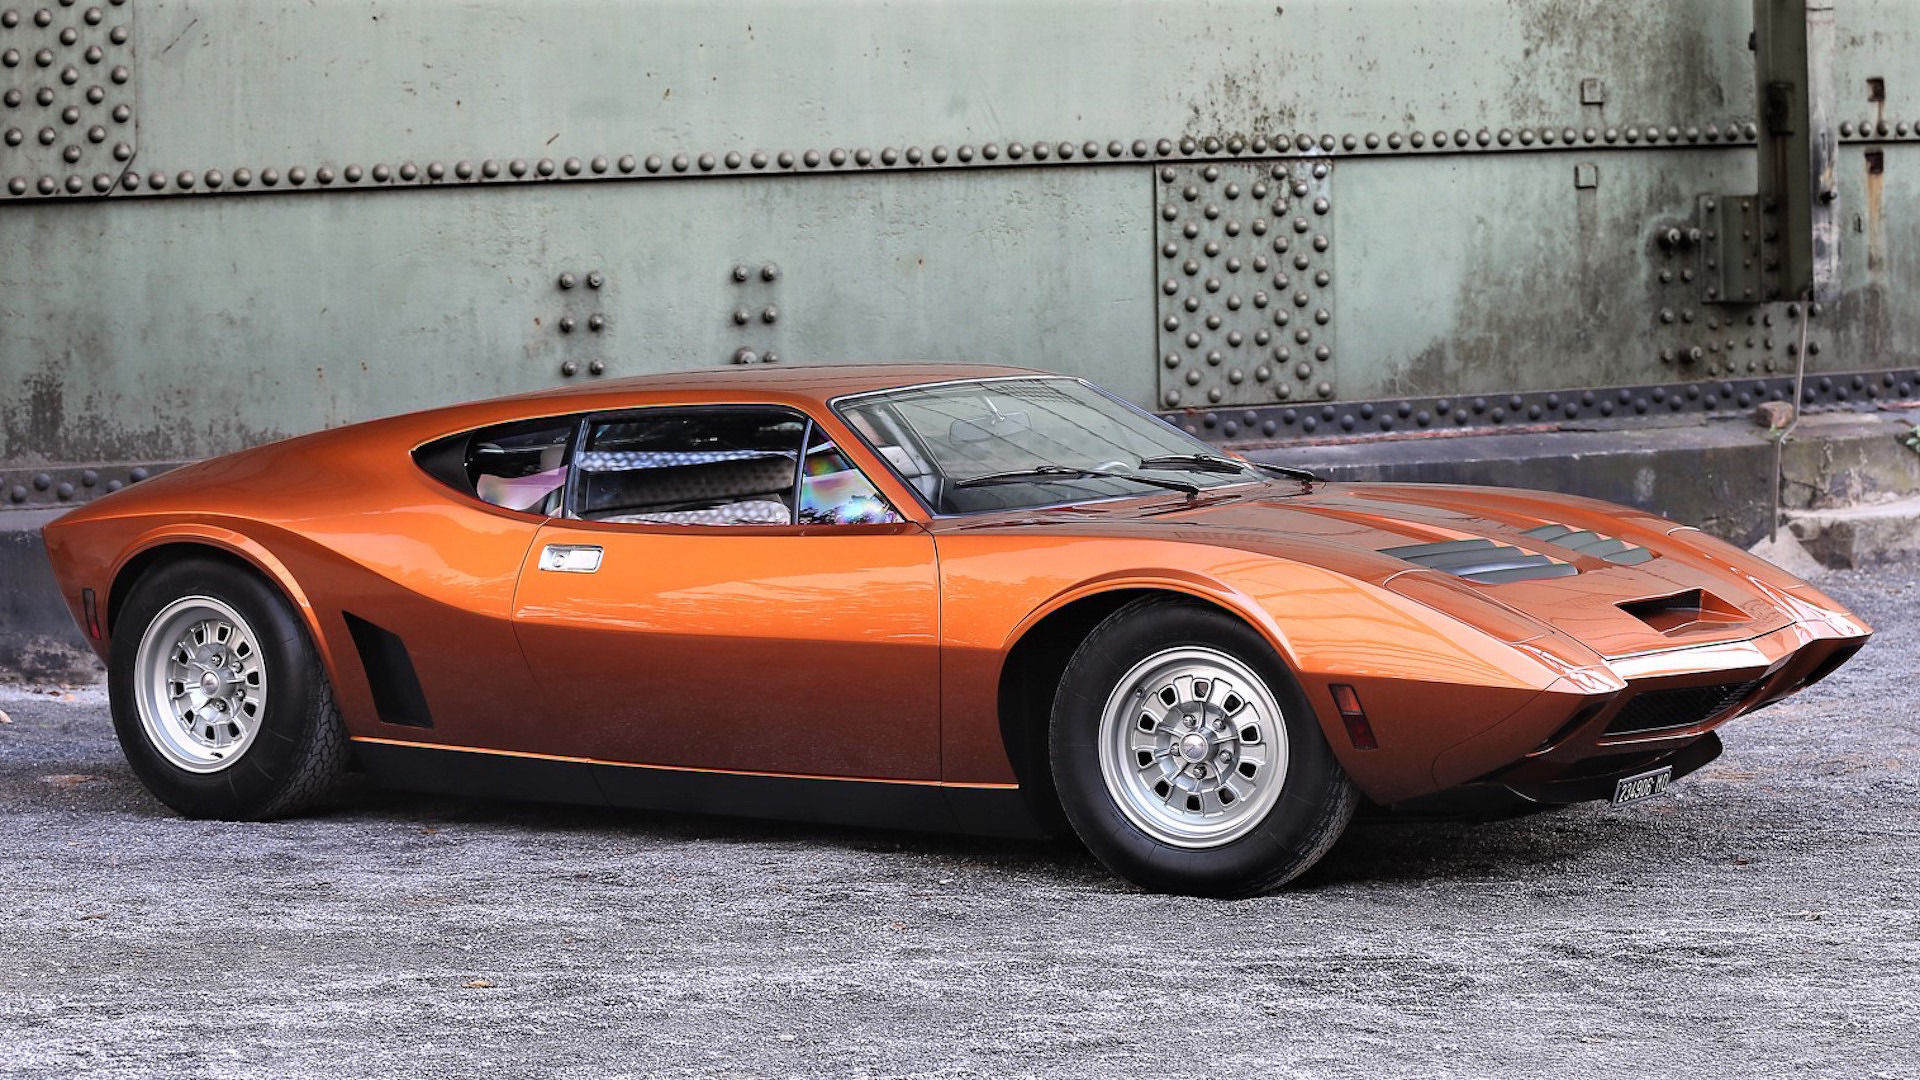 Most Expensive Car In The World >> This AMX/3 could be the most expensive AMC ever sold